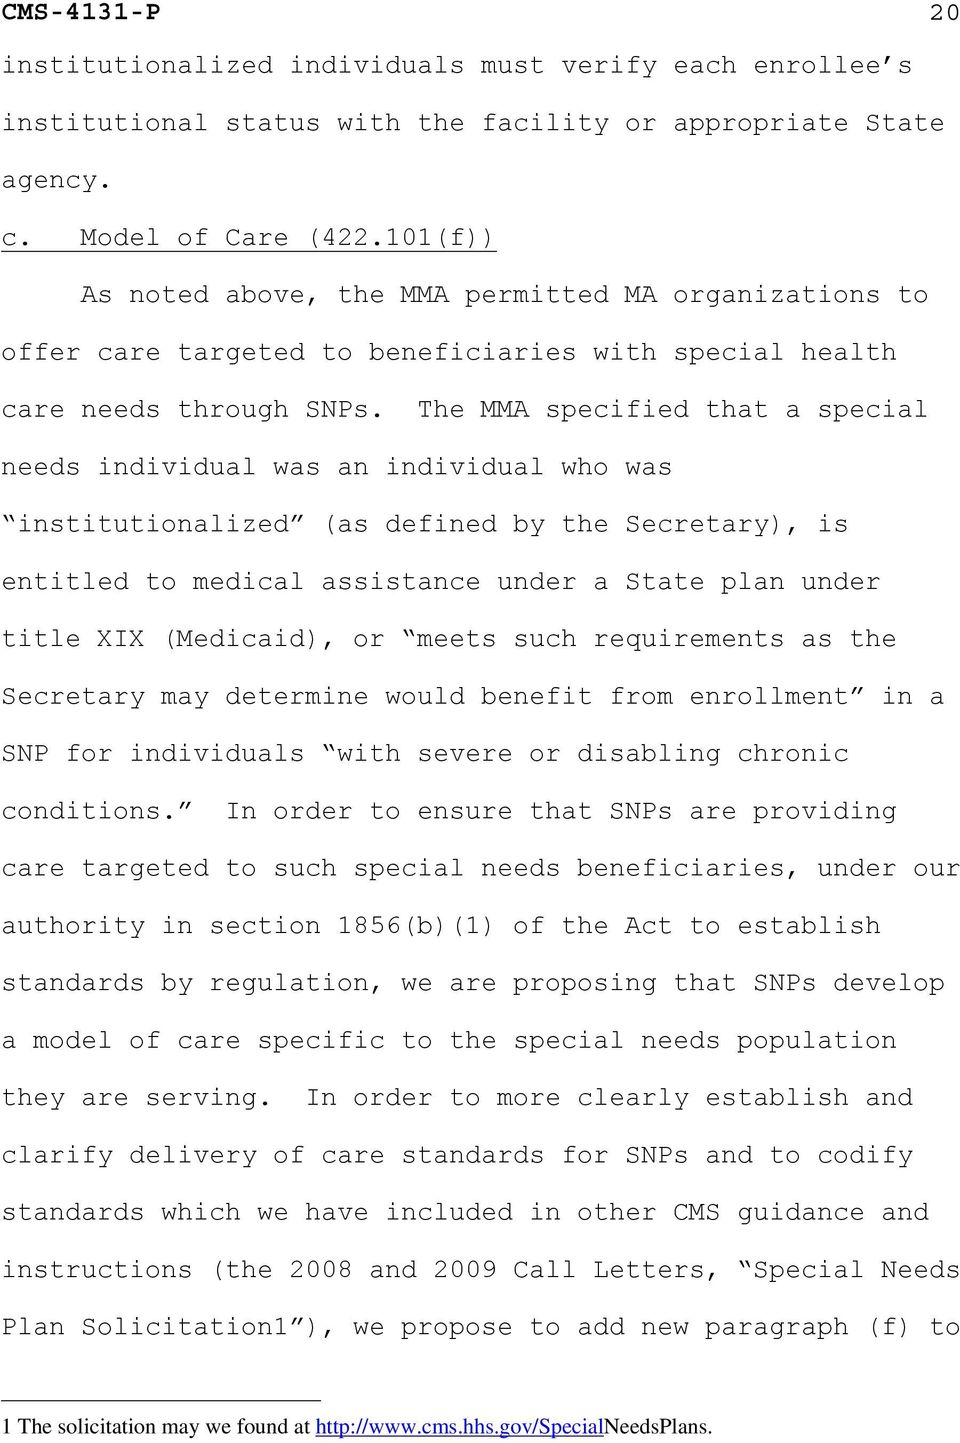 The MMA specified that a special needs individual was an individual who was institutionalized (as defined by the Secretary), is entitled to medical assistance under a State plan under title XIX